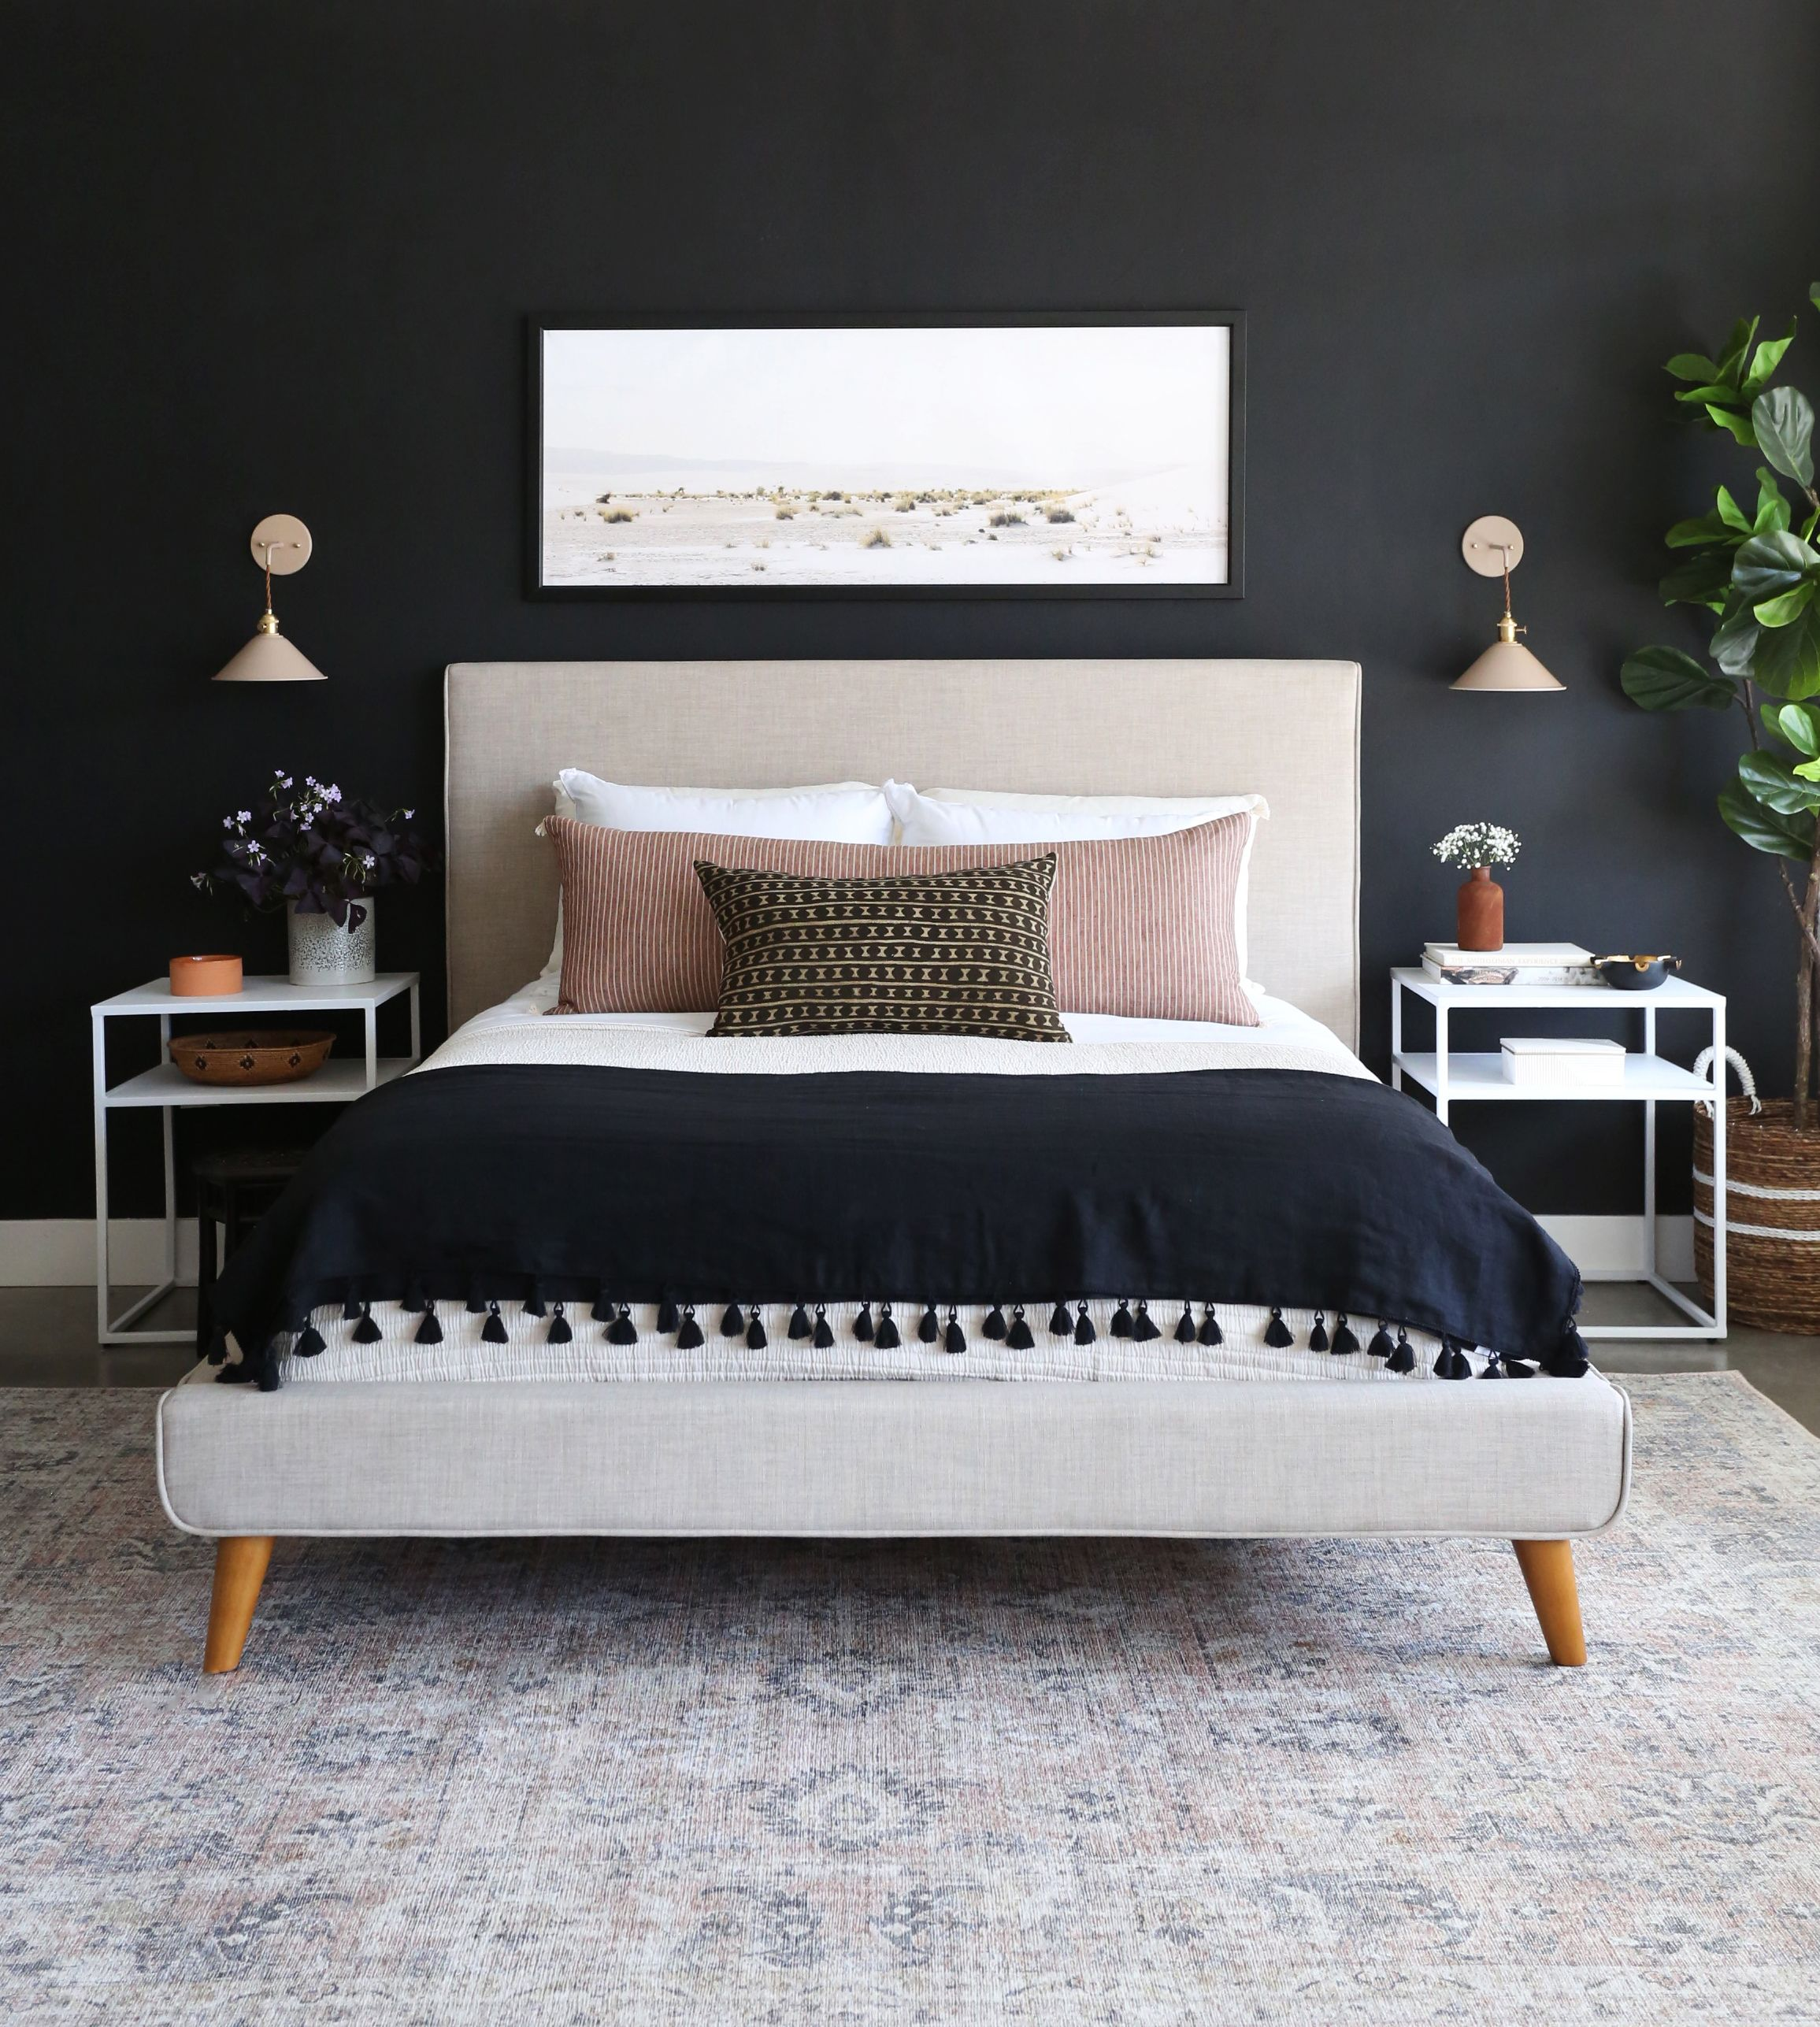 Updating Your Bedroom For Spring Moody Bedroom Small Bedroom